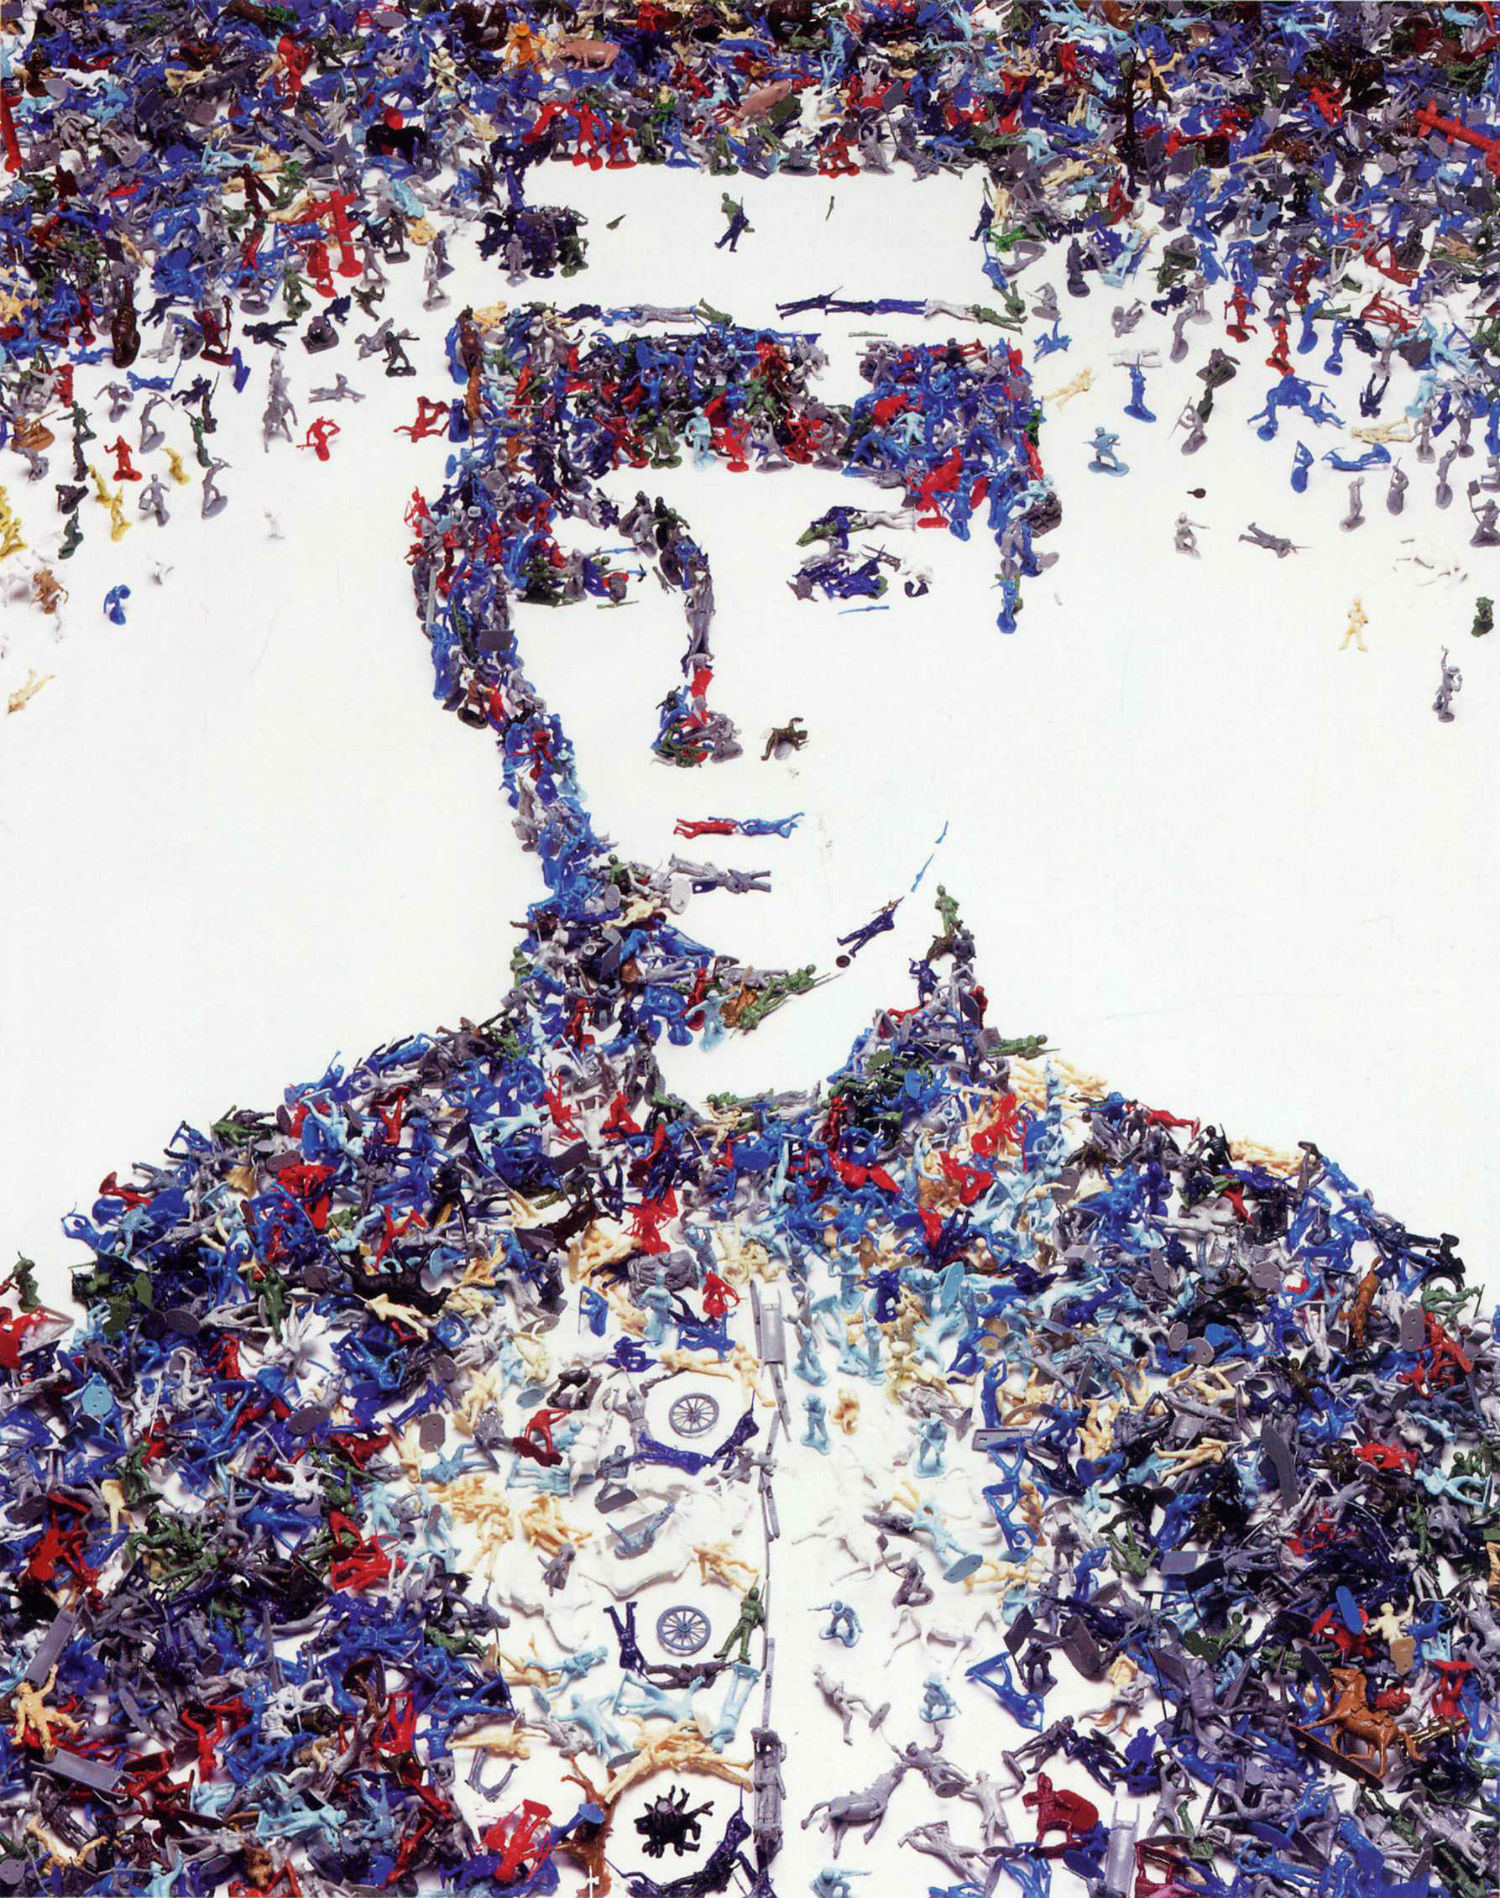 Vick Muniz art collage portrait soldier